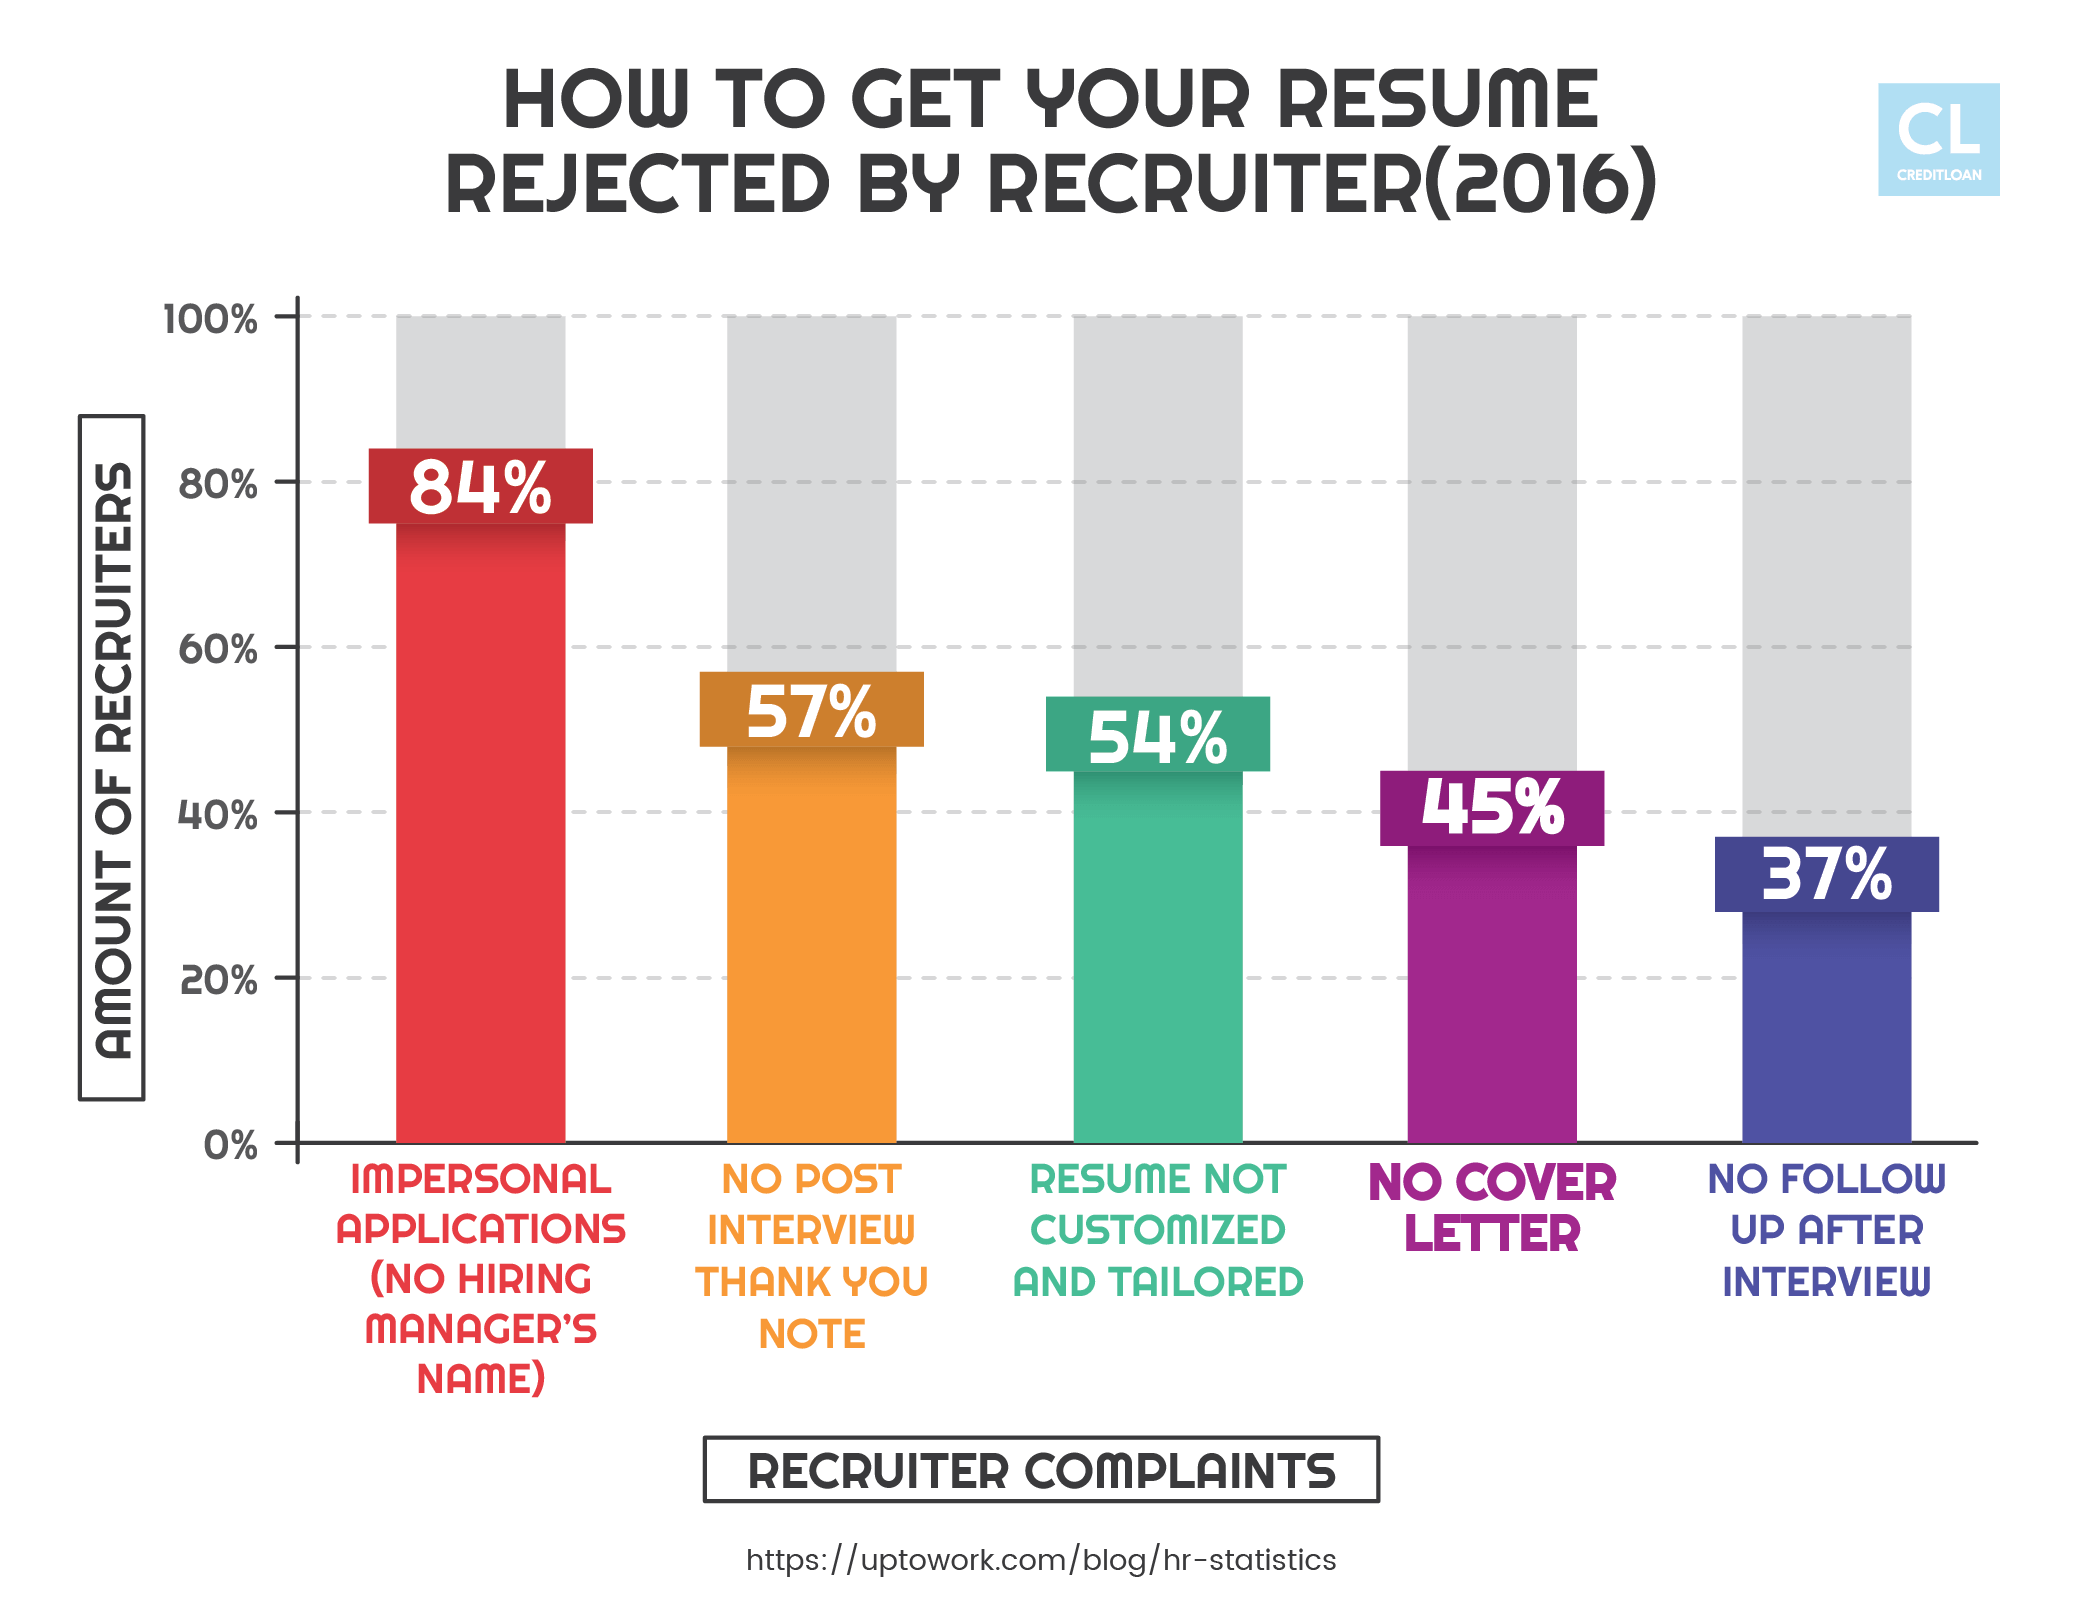 Data on Resume Complaints and Rejections